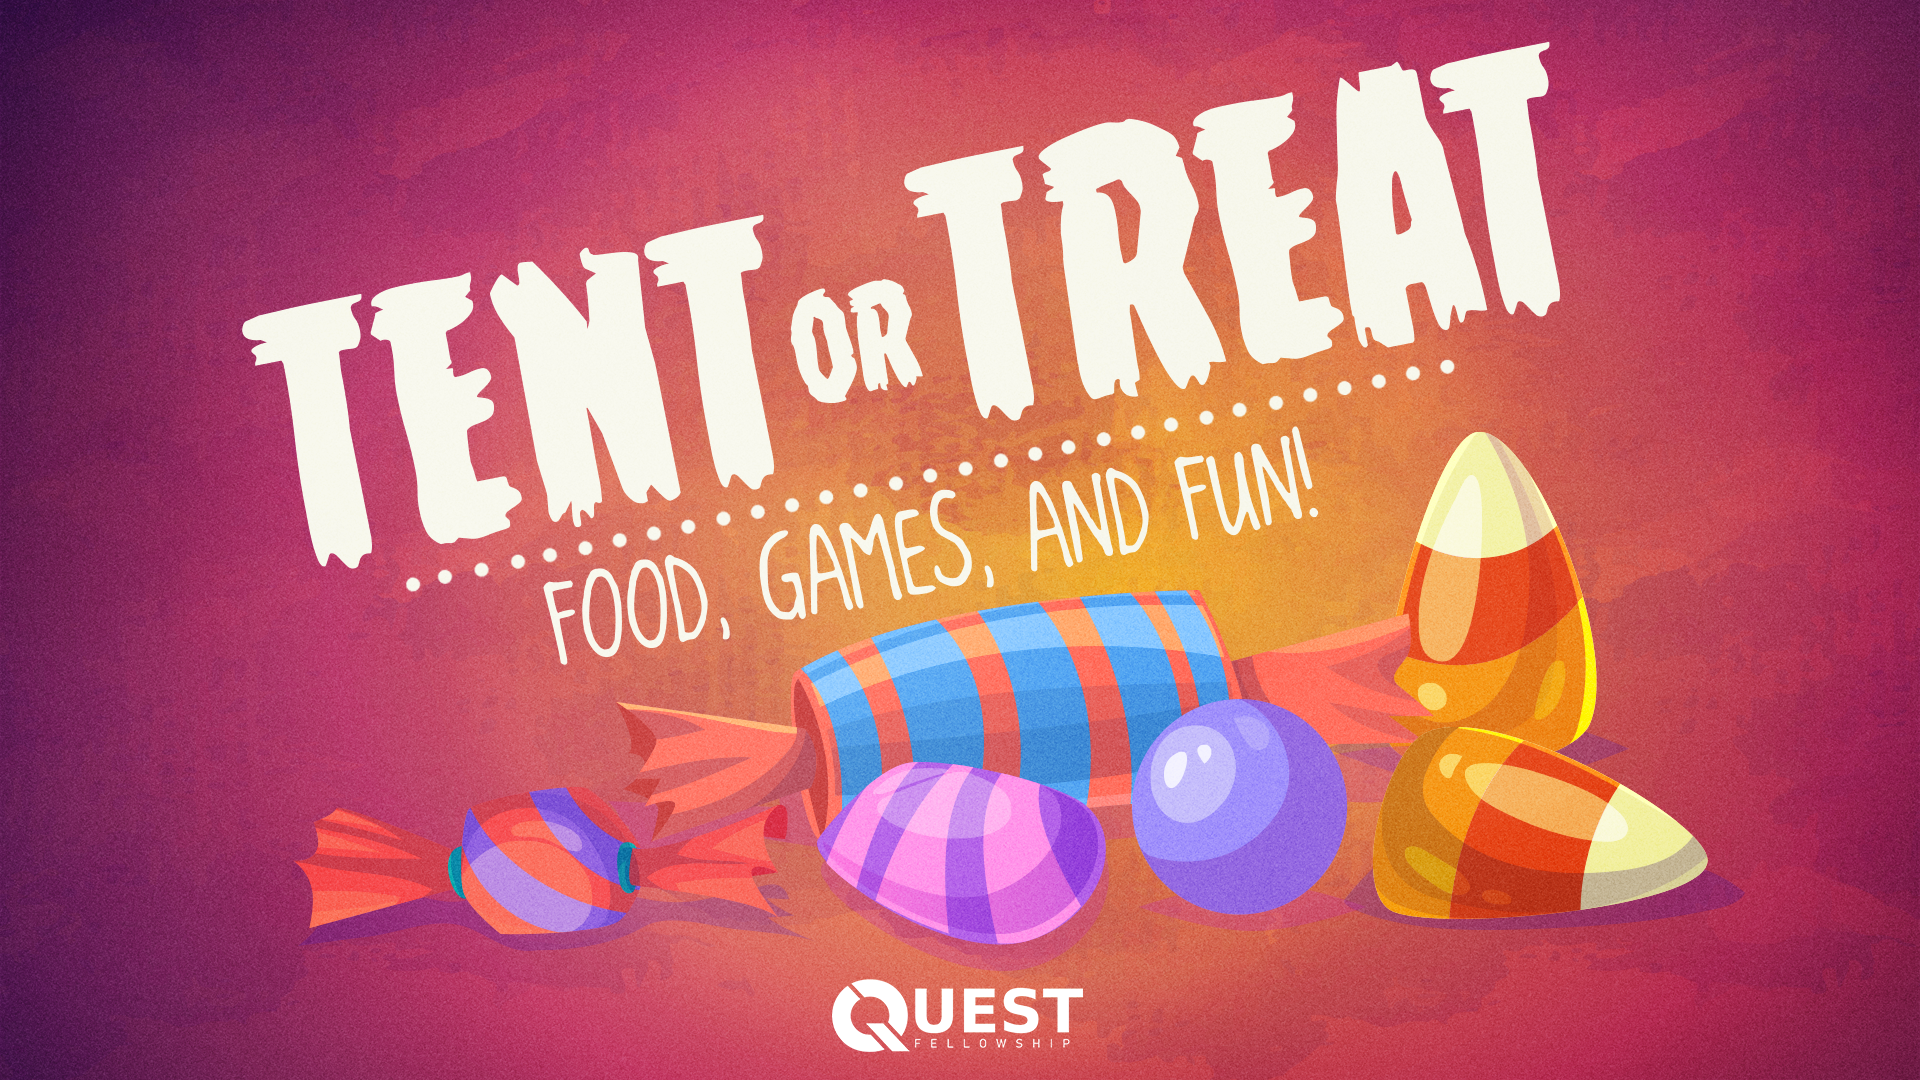 Tent Or Treat 2019.png